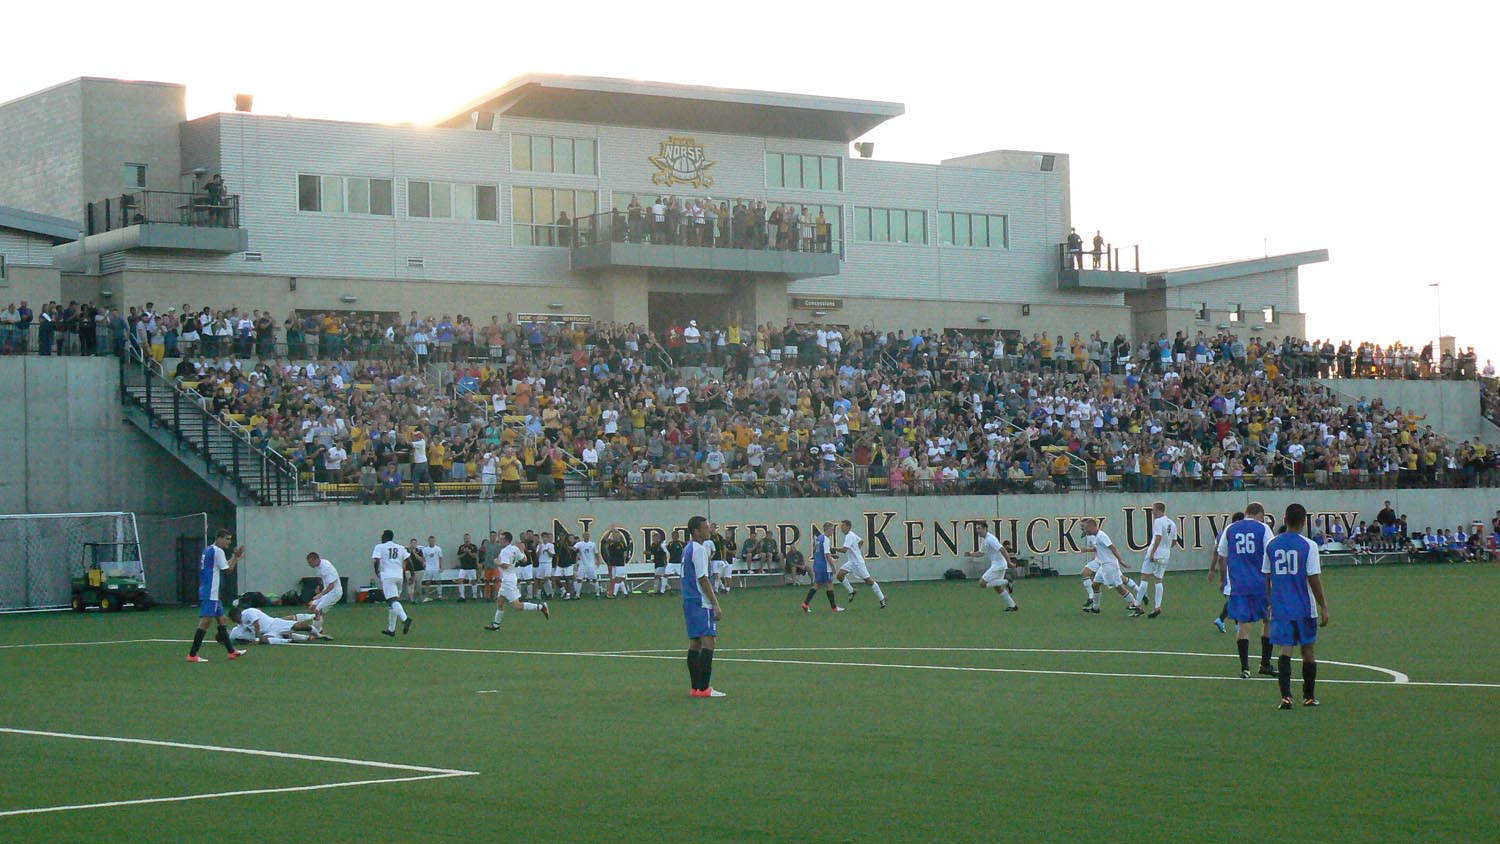 Norhtern Kentucky University soccer complex